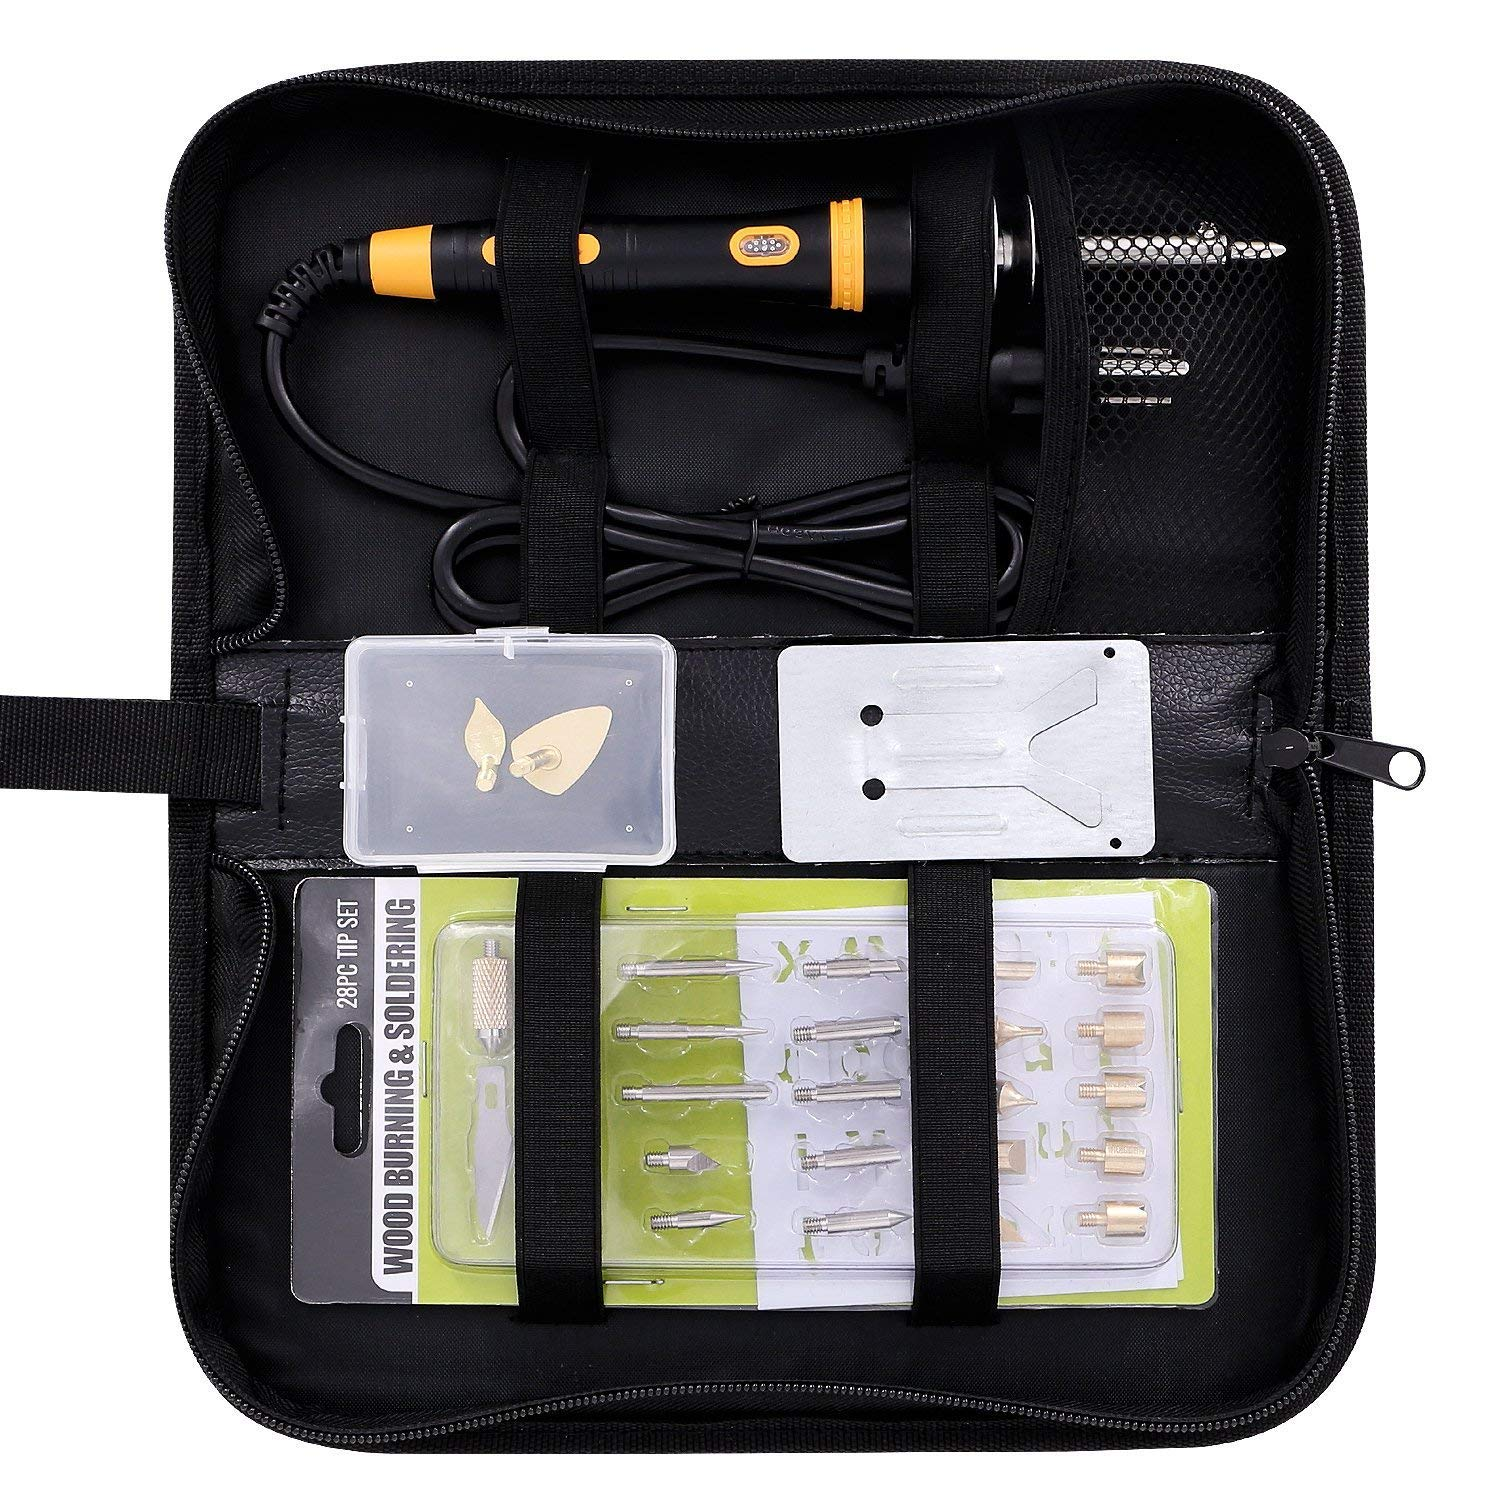 Wood Burning Kit with Various Wood Embossing//Carving//Soldering Tips +Stencil Stand Full Set Wood Burning Kit Carrying Case